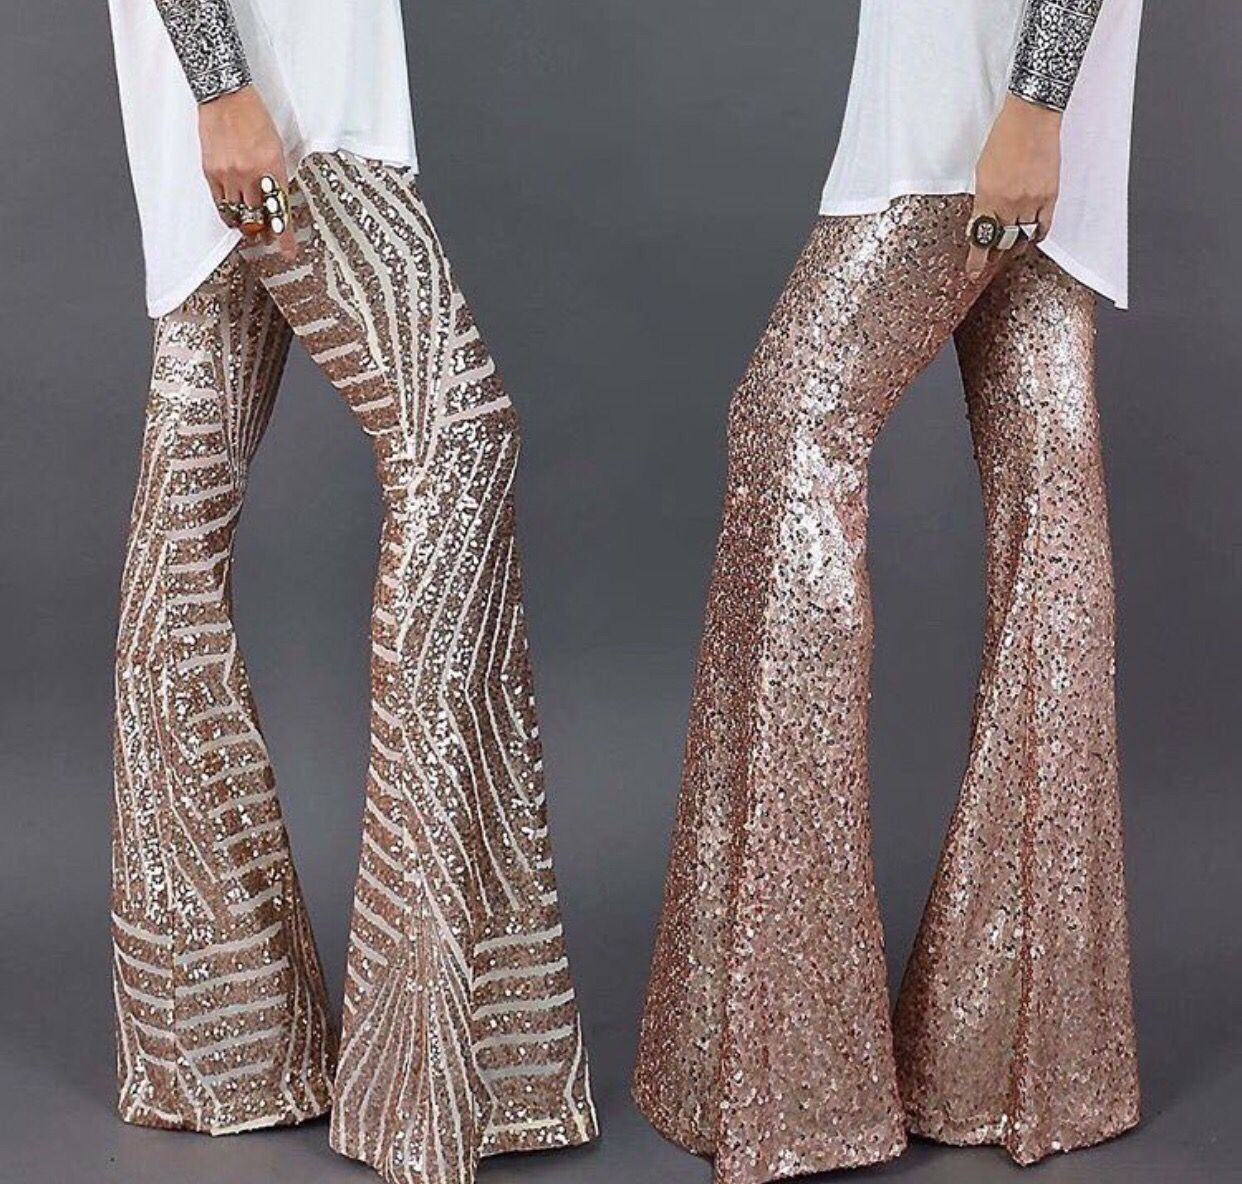 Sequin bell bottom pants! In love | Clothes | Sequin ...